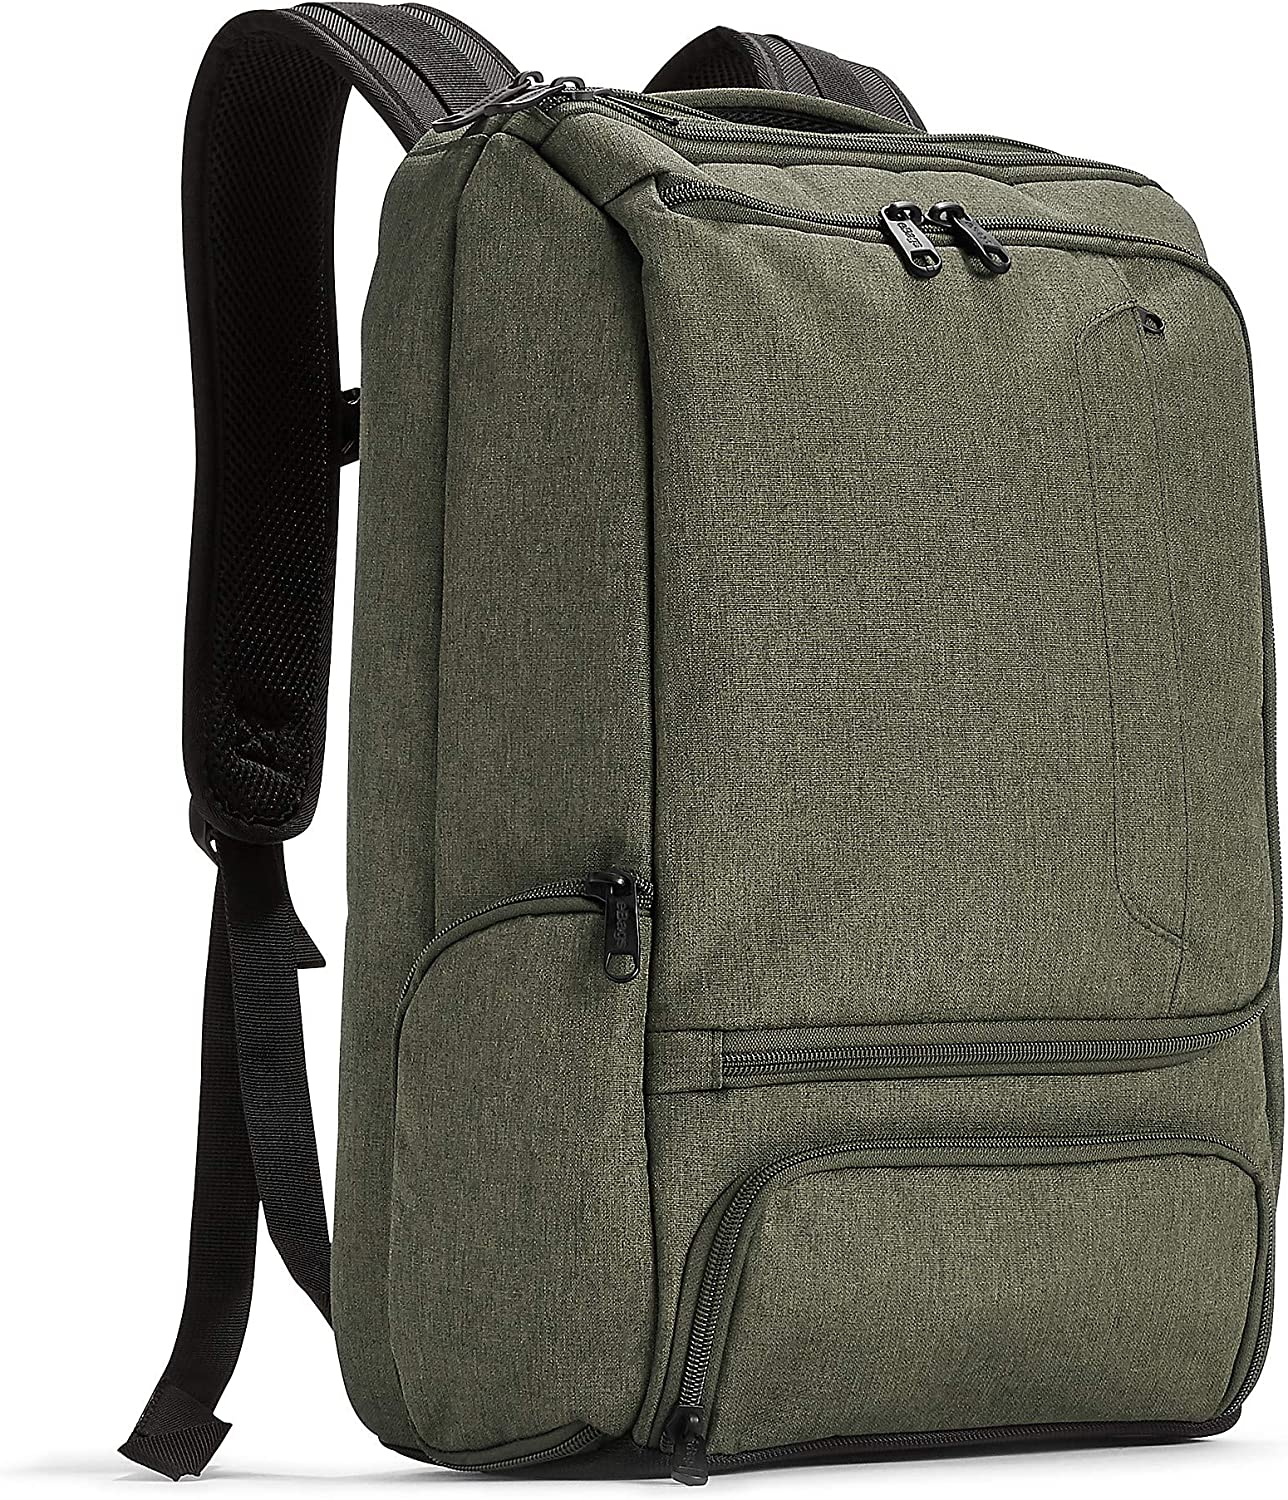 eBags Pro Slim Laptop Backpack (Sage Green)